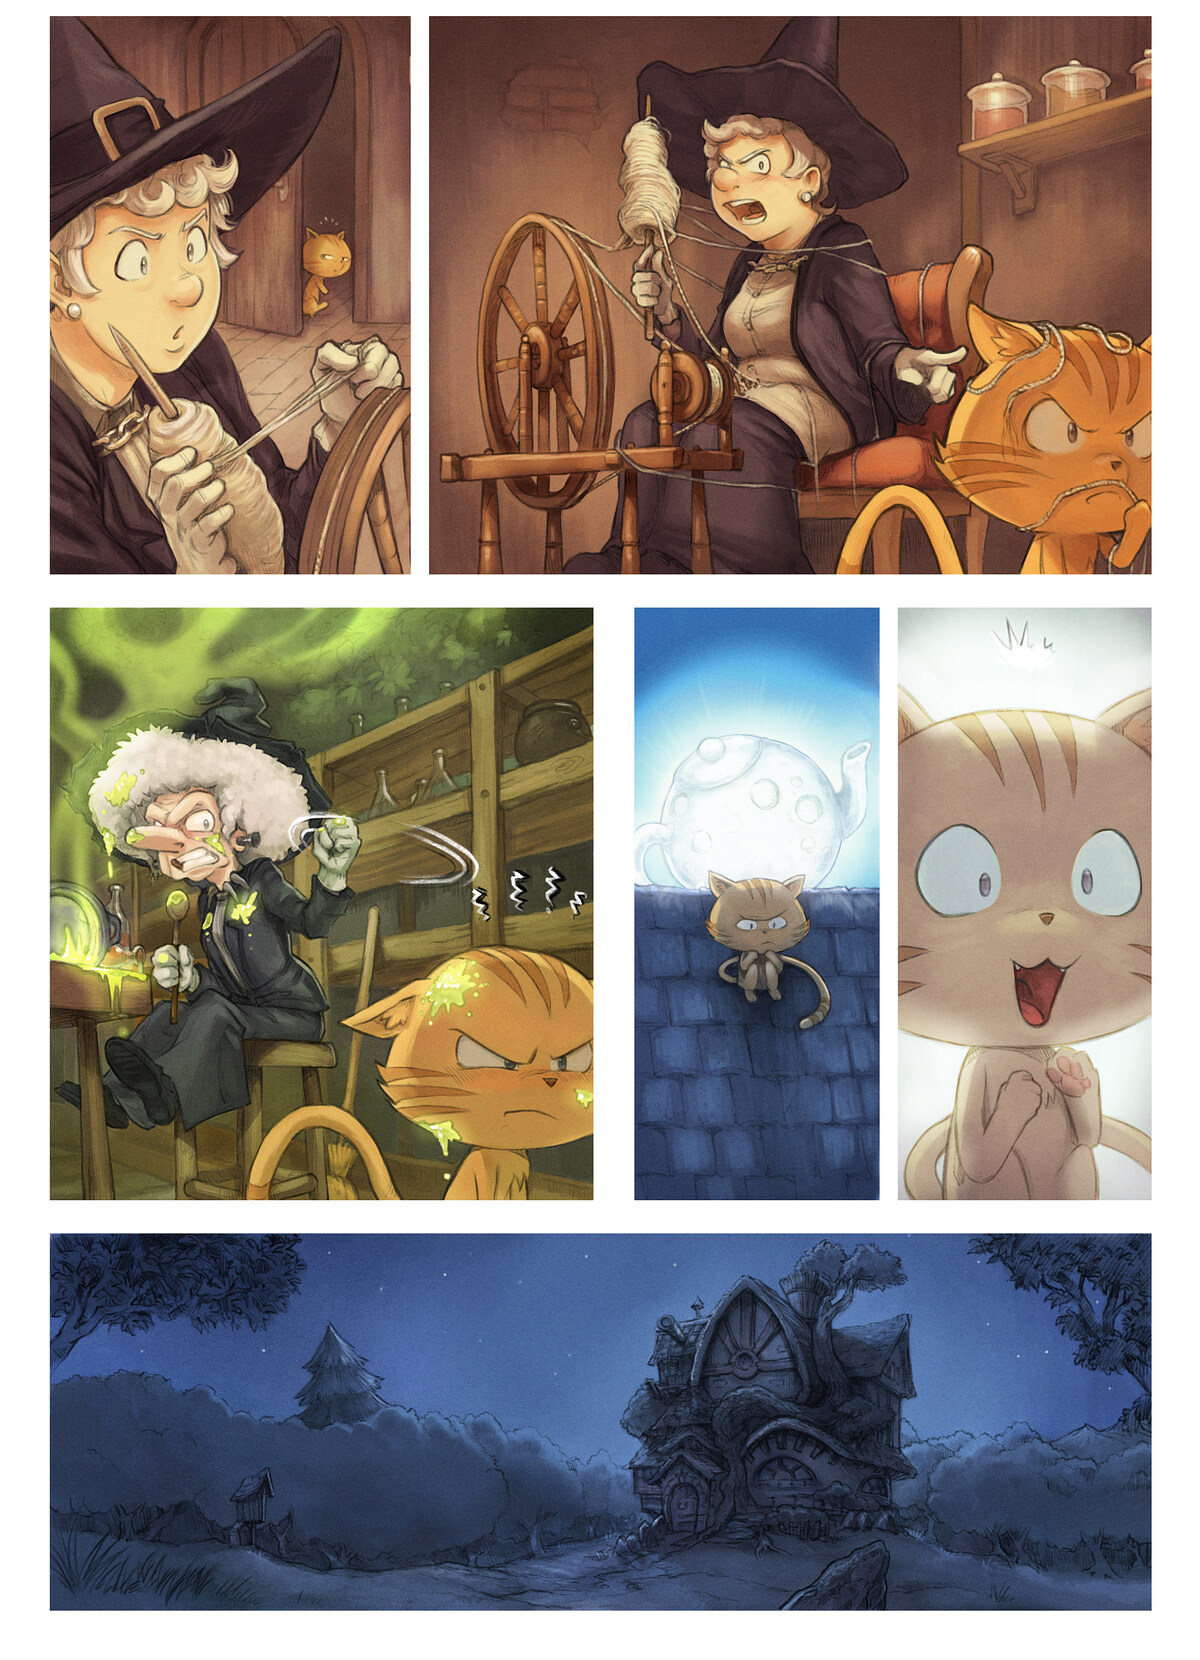 A webcomic page of Pepper&Carrot, 漫画全集 30 [cn], 页面 4